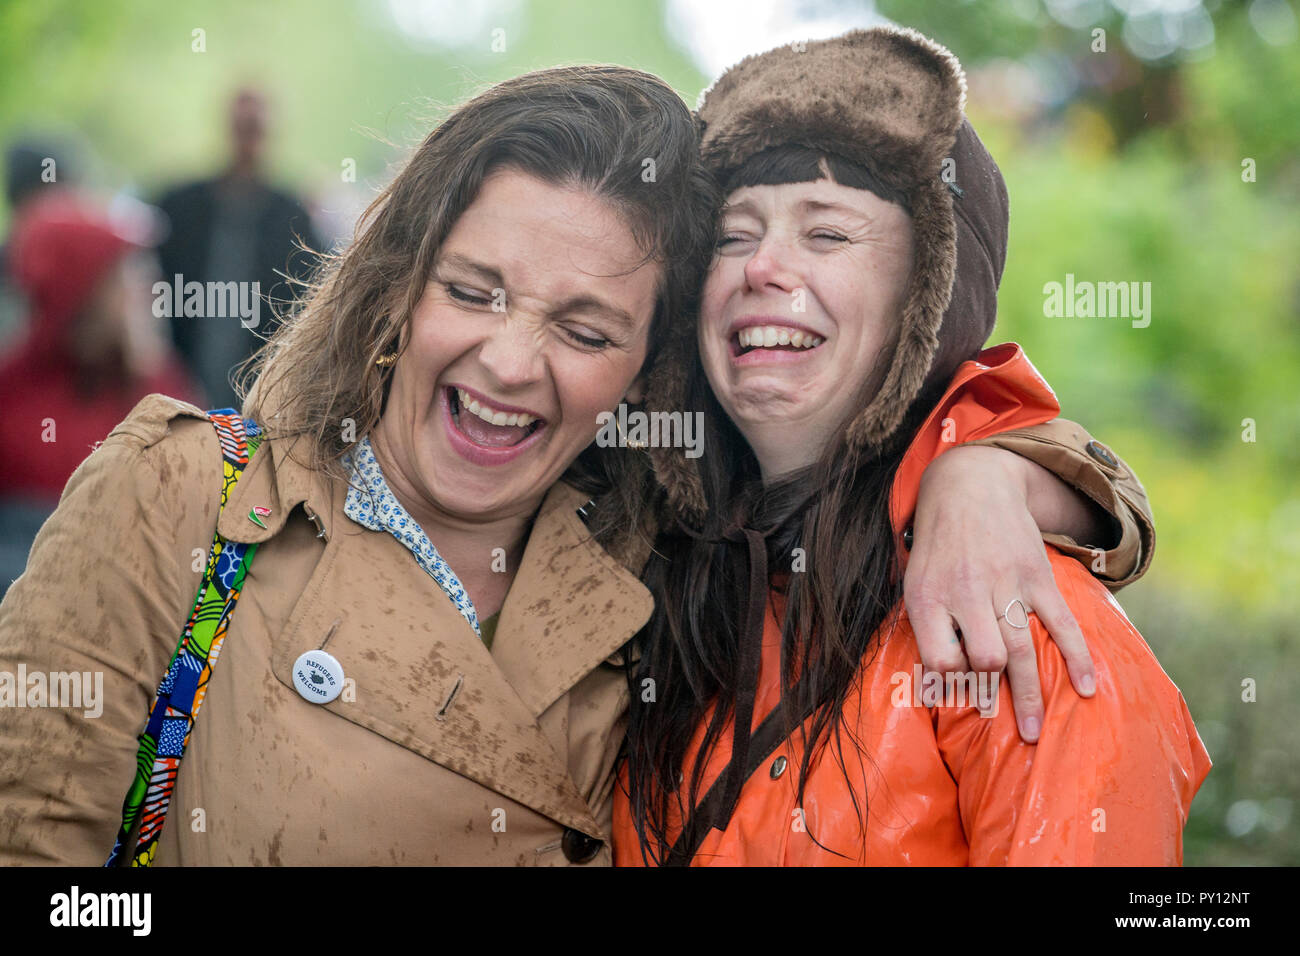 Girlfriends laughing together, during Iceland's independence day, Reykjavik, Iceland. - Stock Image